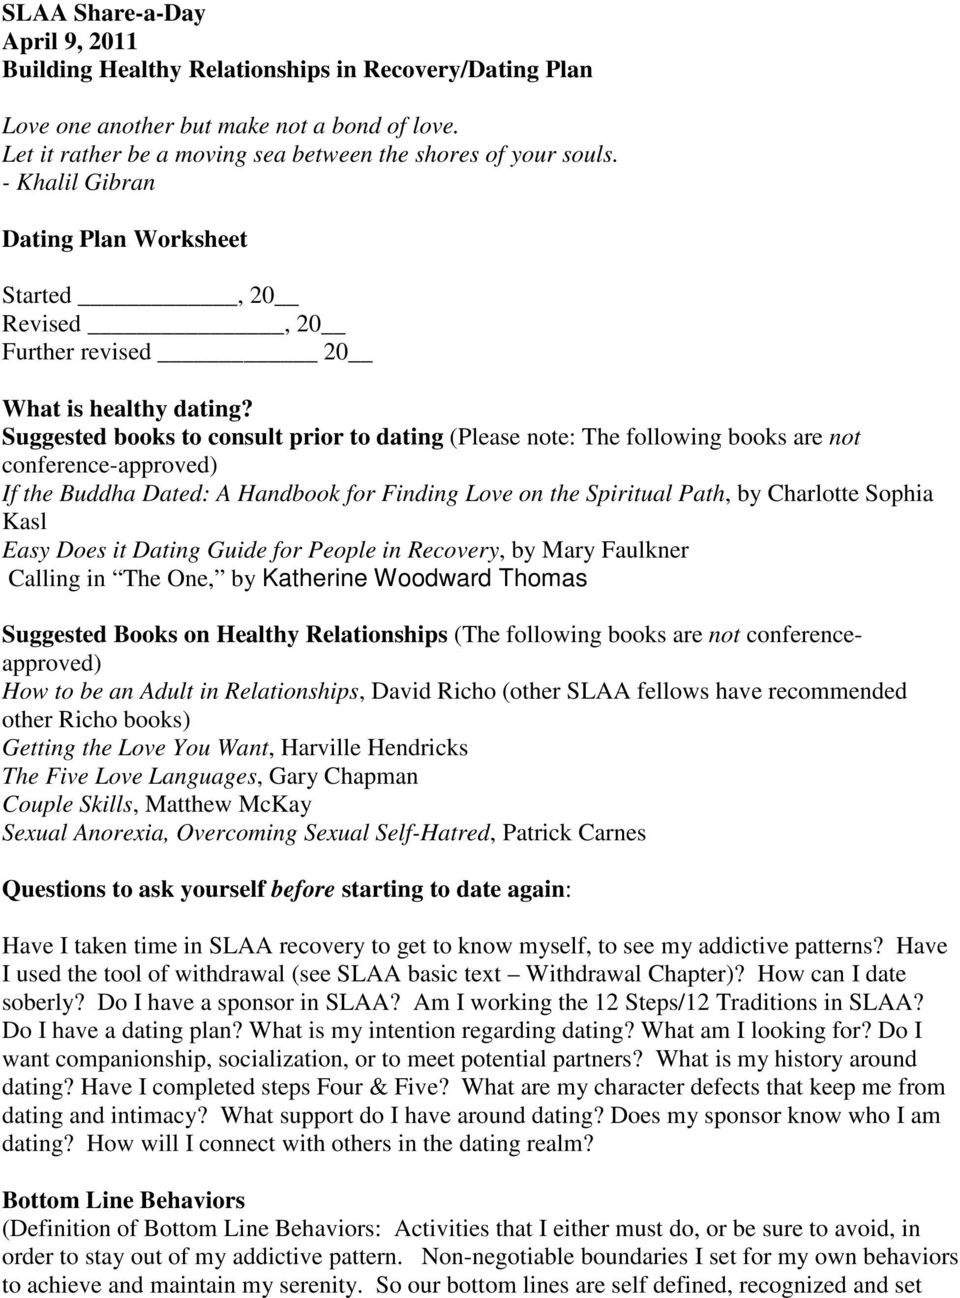 Worksheets Building Healthy Relationships Worksheet slaa share a day april 9 2011 building healthy relationships in suggested books to consult prior dating please note the following are not